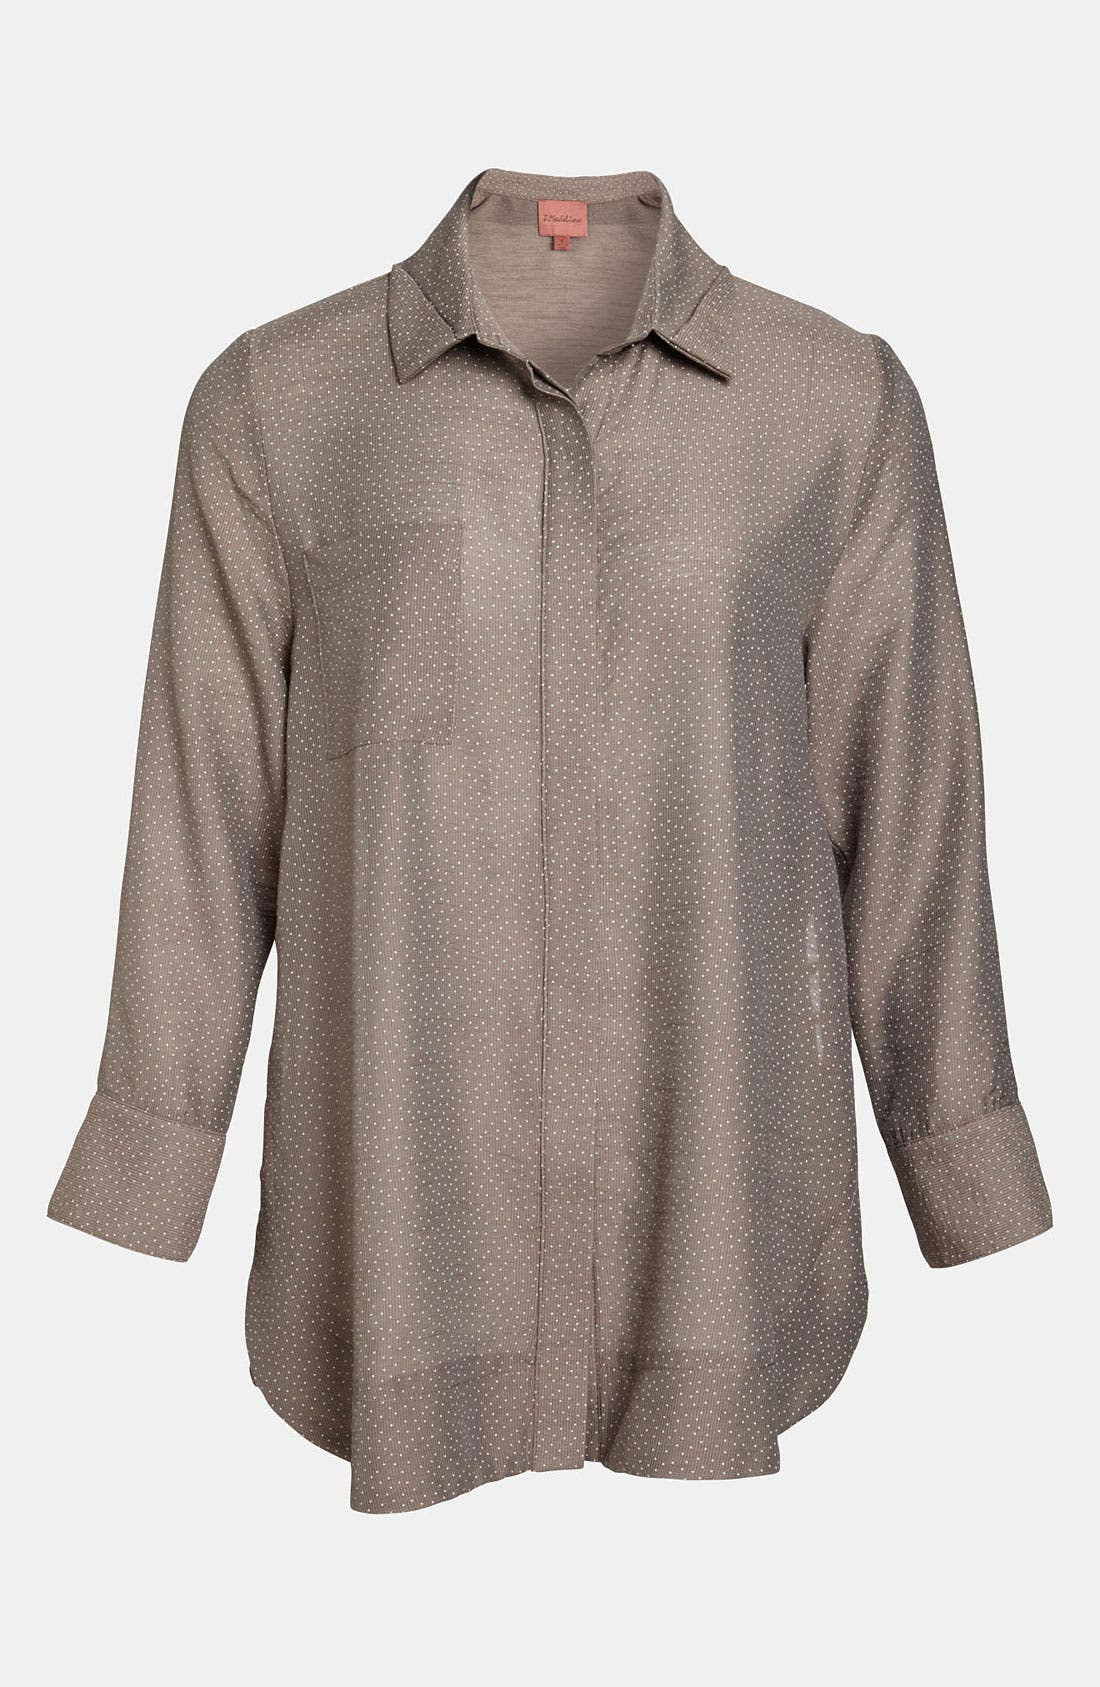 Alternate Image 1 Selected - I.Madeline Button Seam Blouse